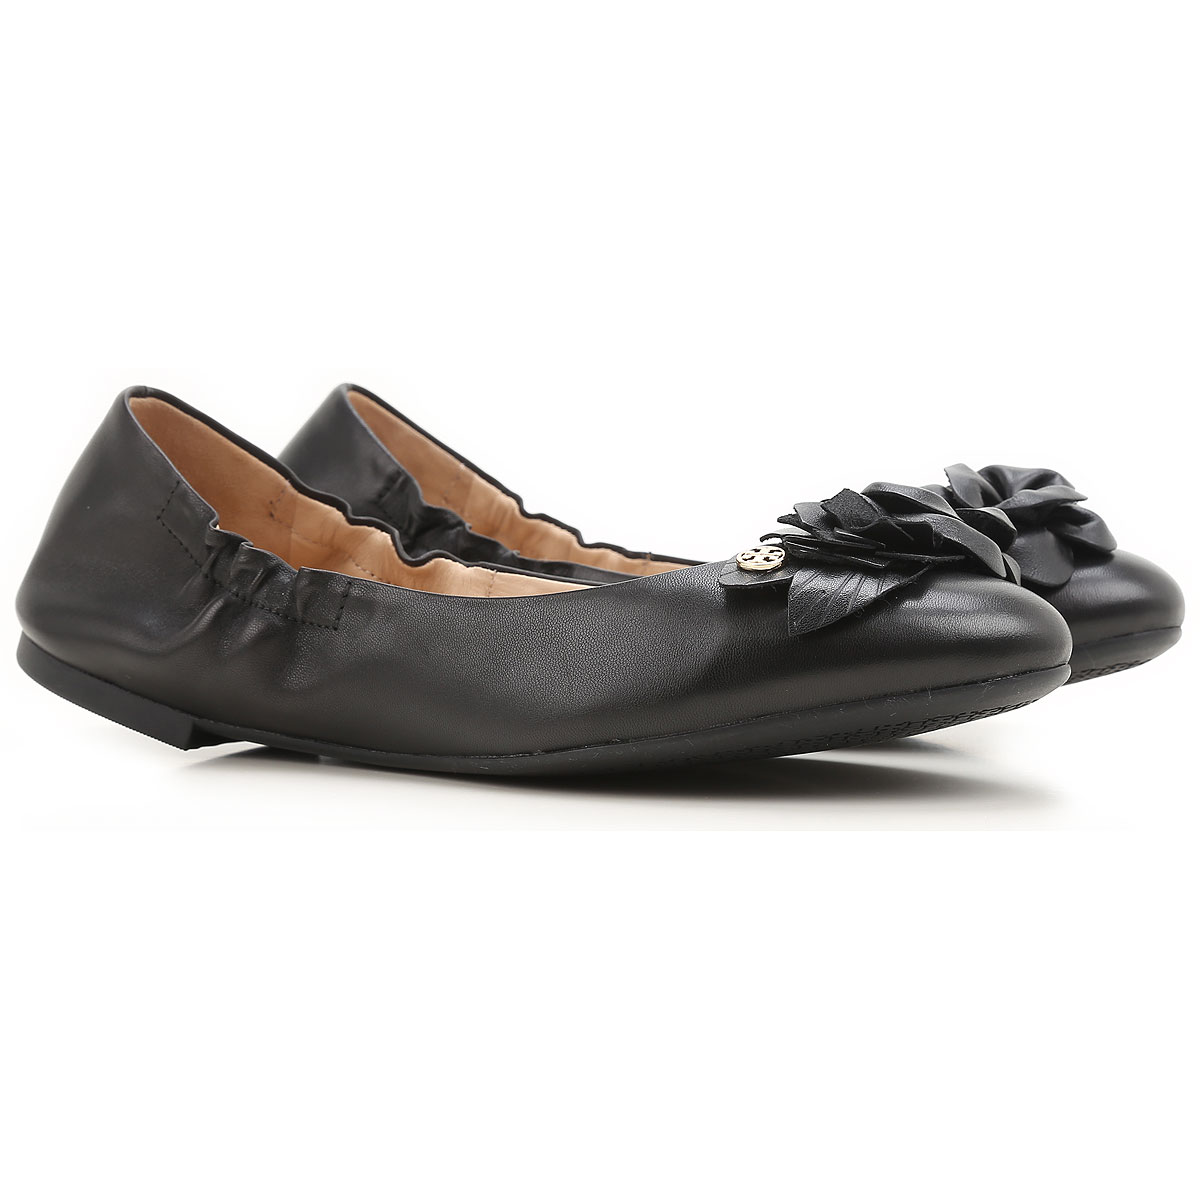 Image of Tory Burch Ballet Flats Ballerina Shoes for Women On Sale in Outlet, Black, Leather, 2017, 6 6.5 7